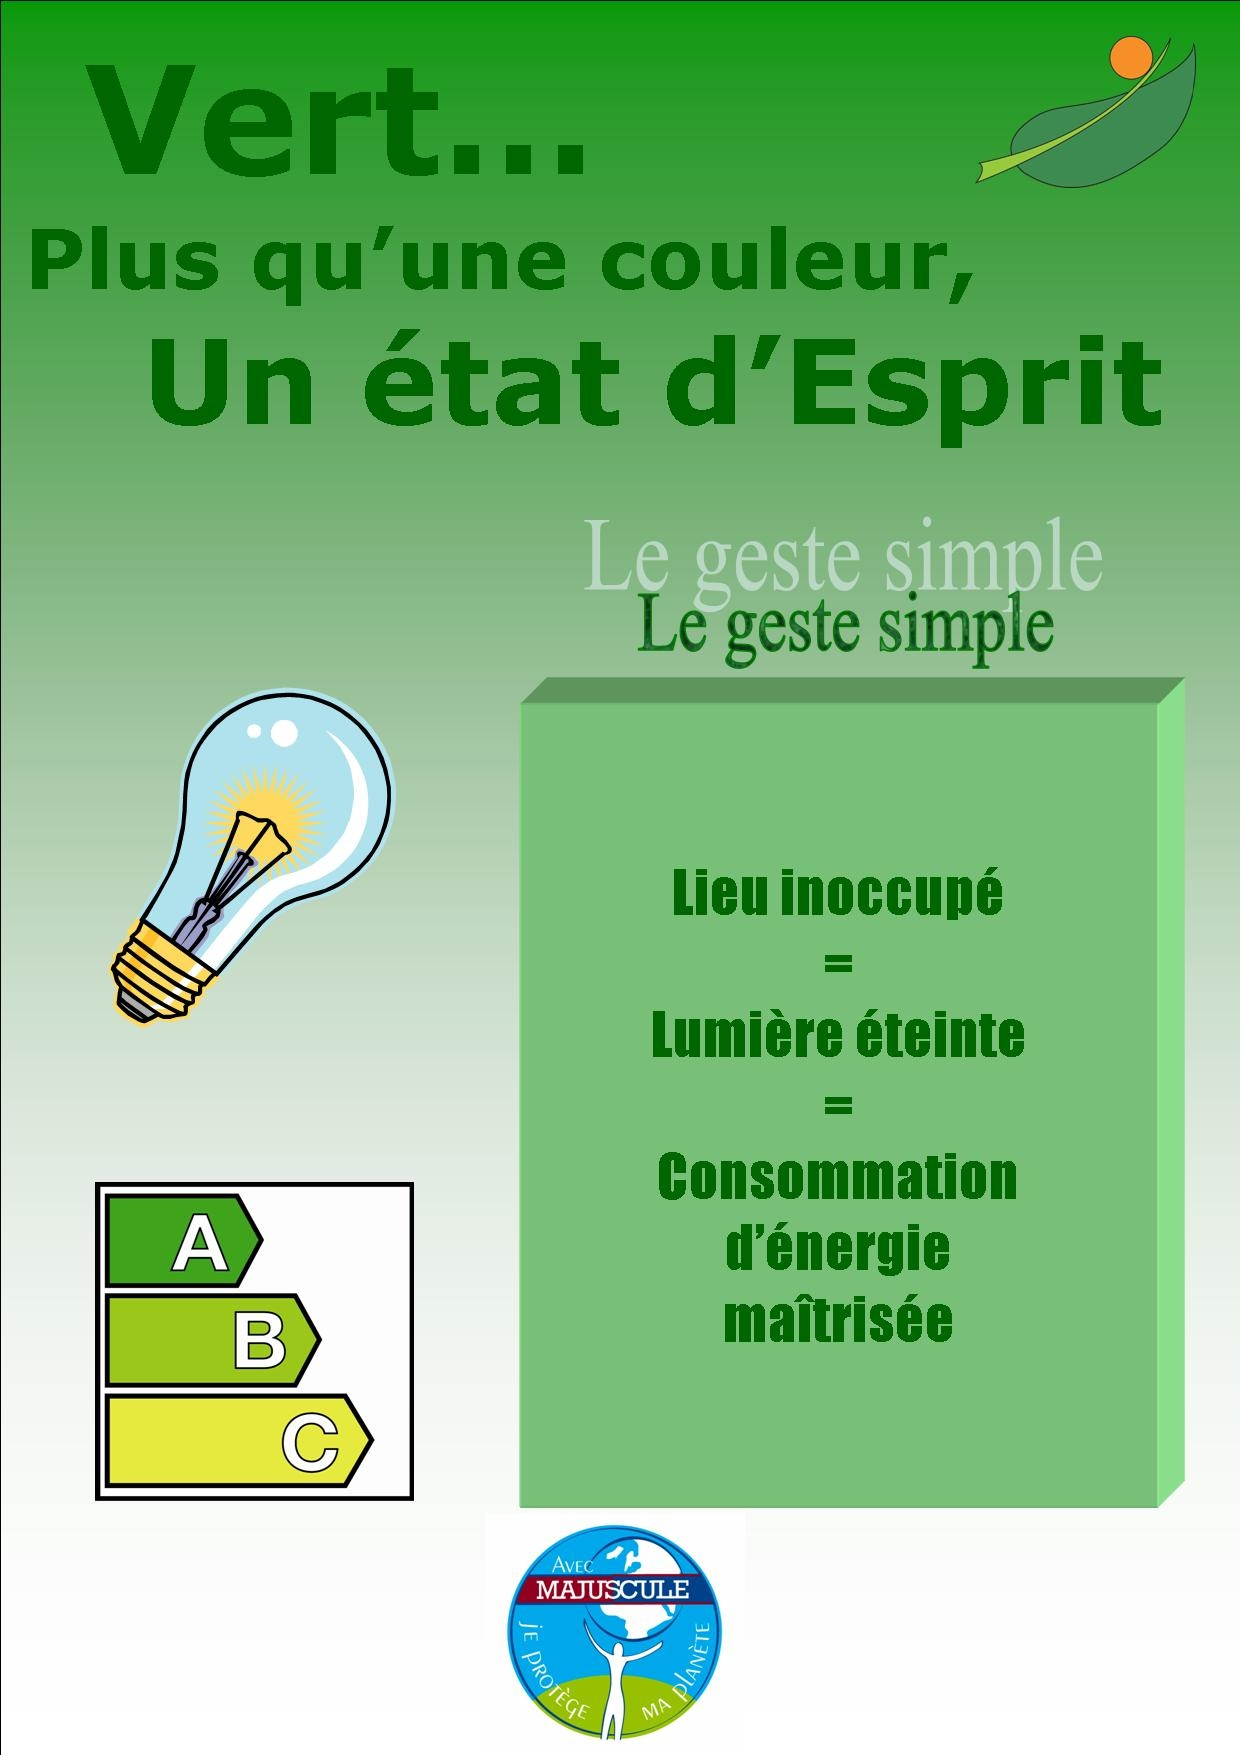 Le geste simple Lieu inoccupe1